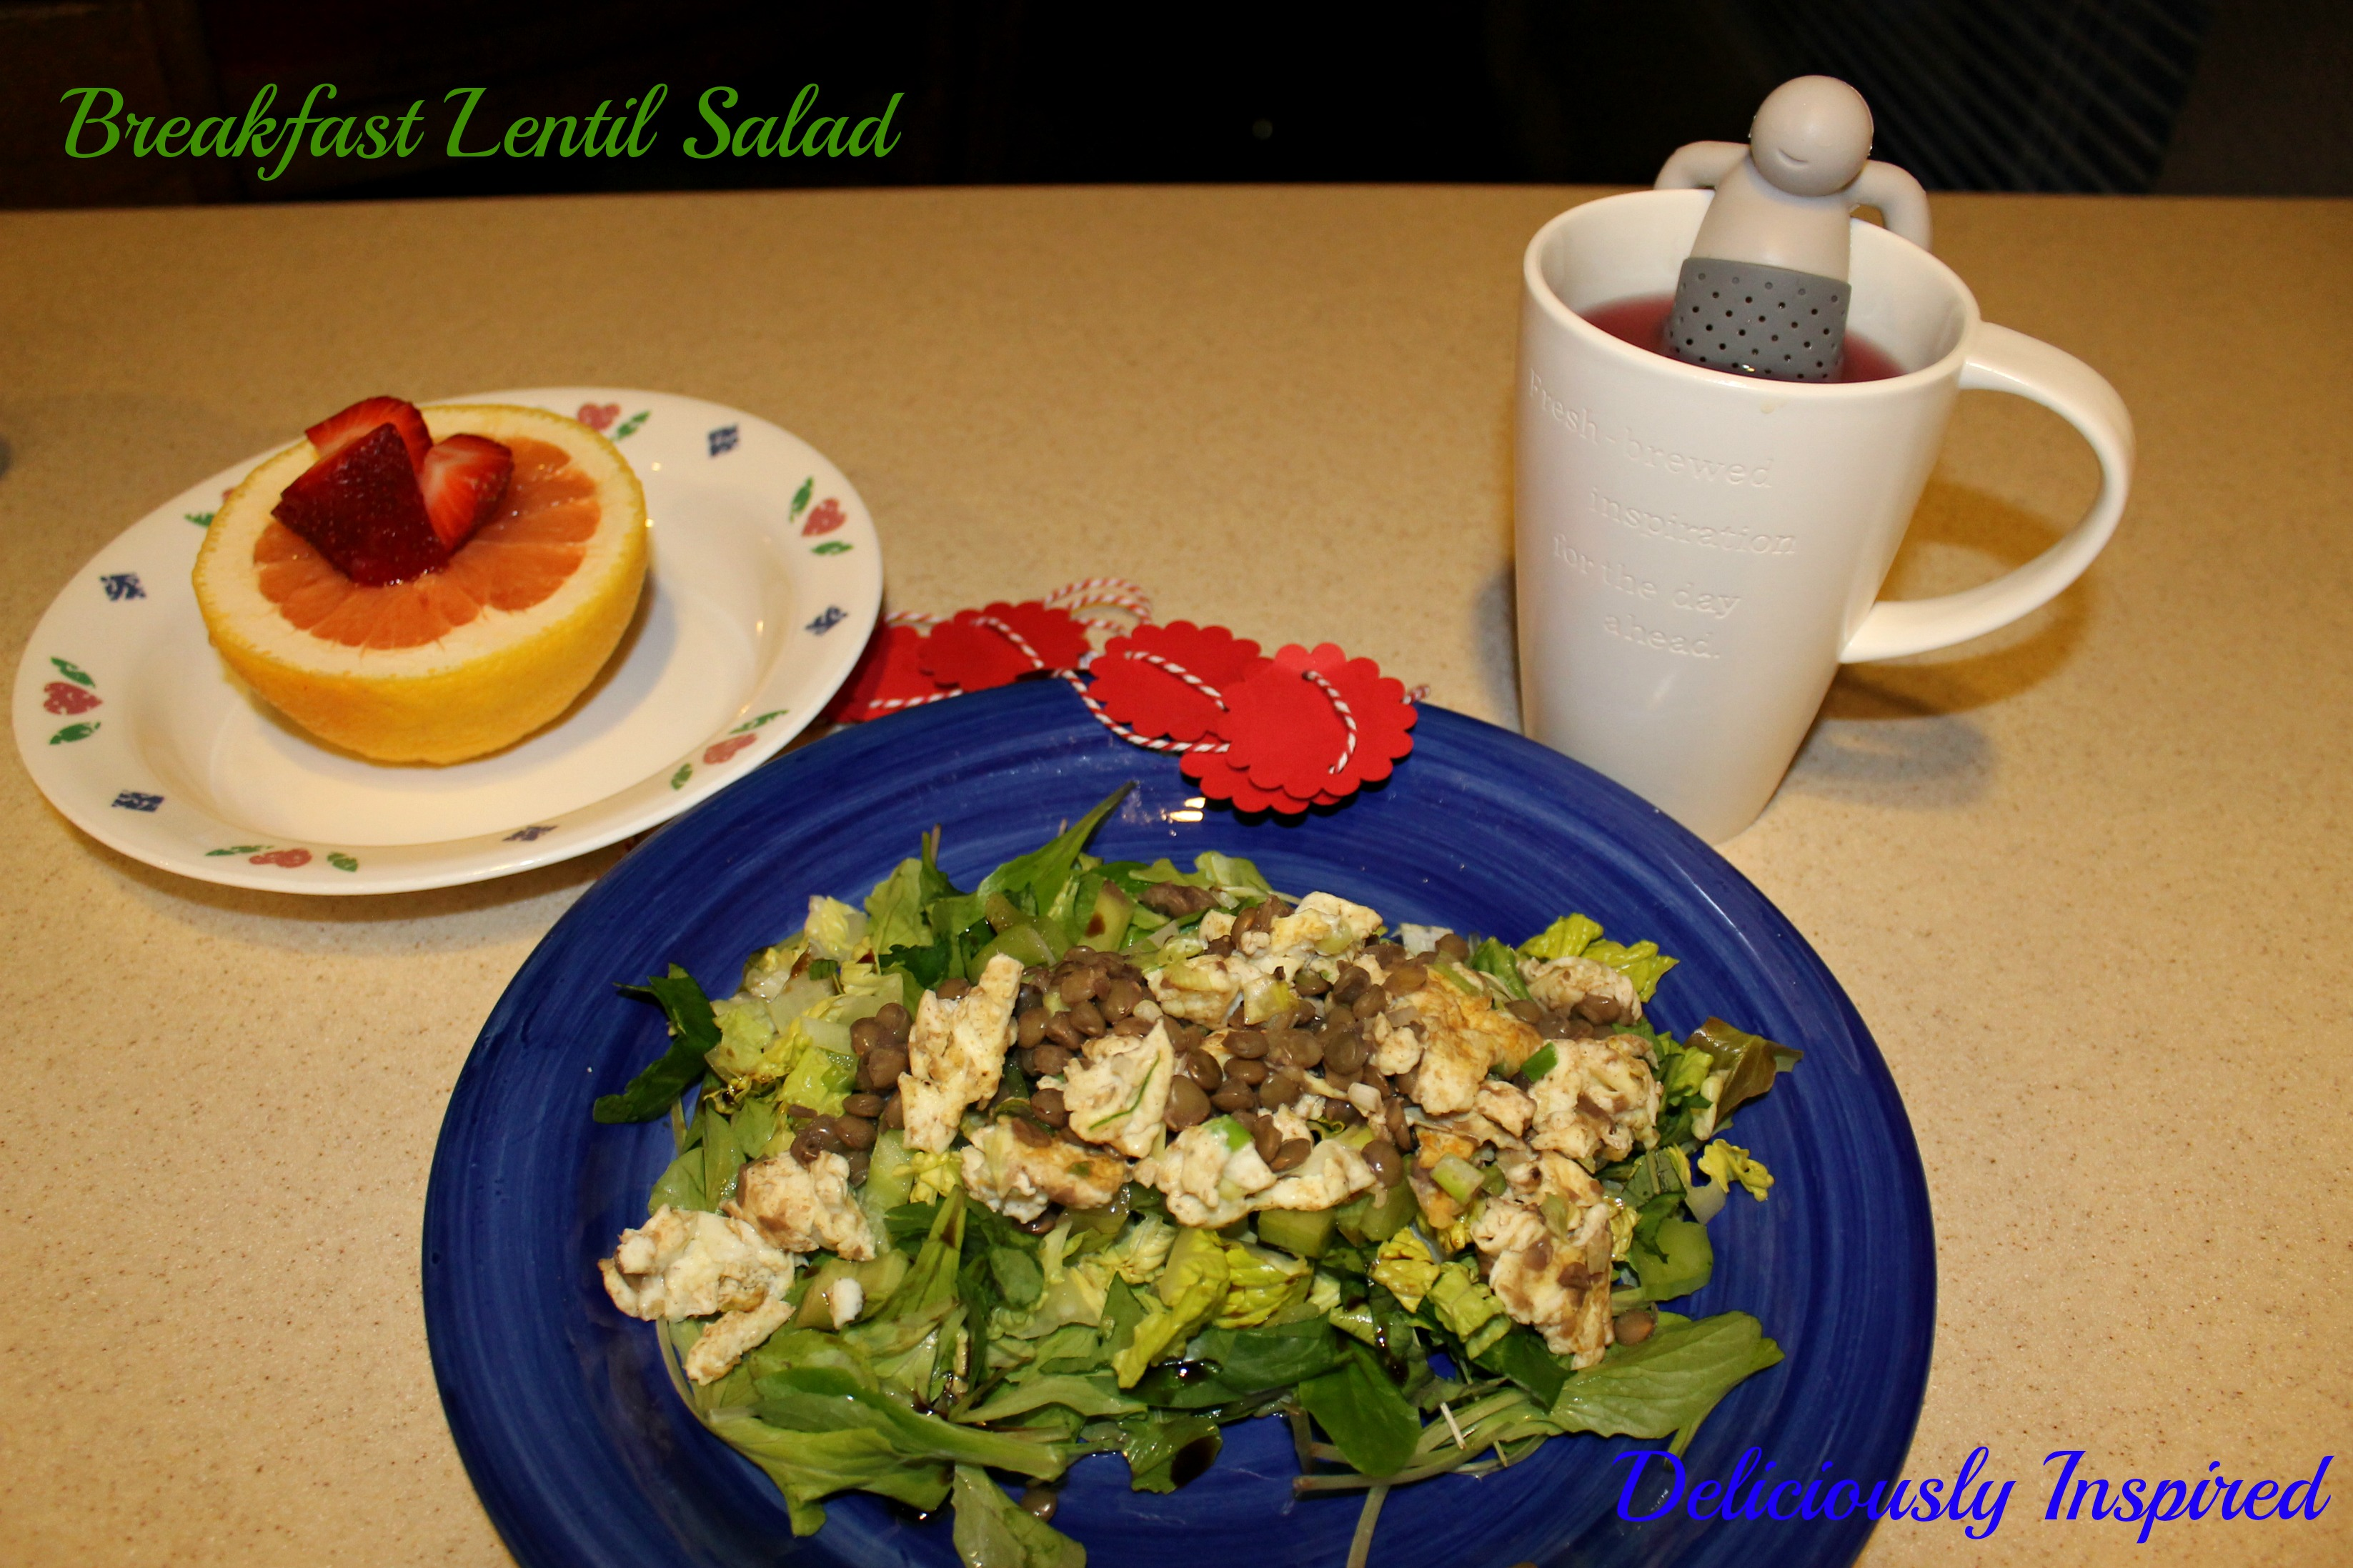 Breakfast Lentil Salad